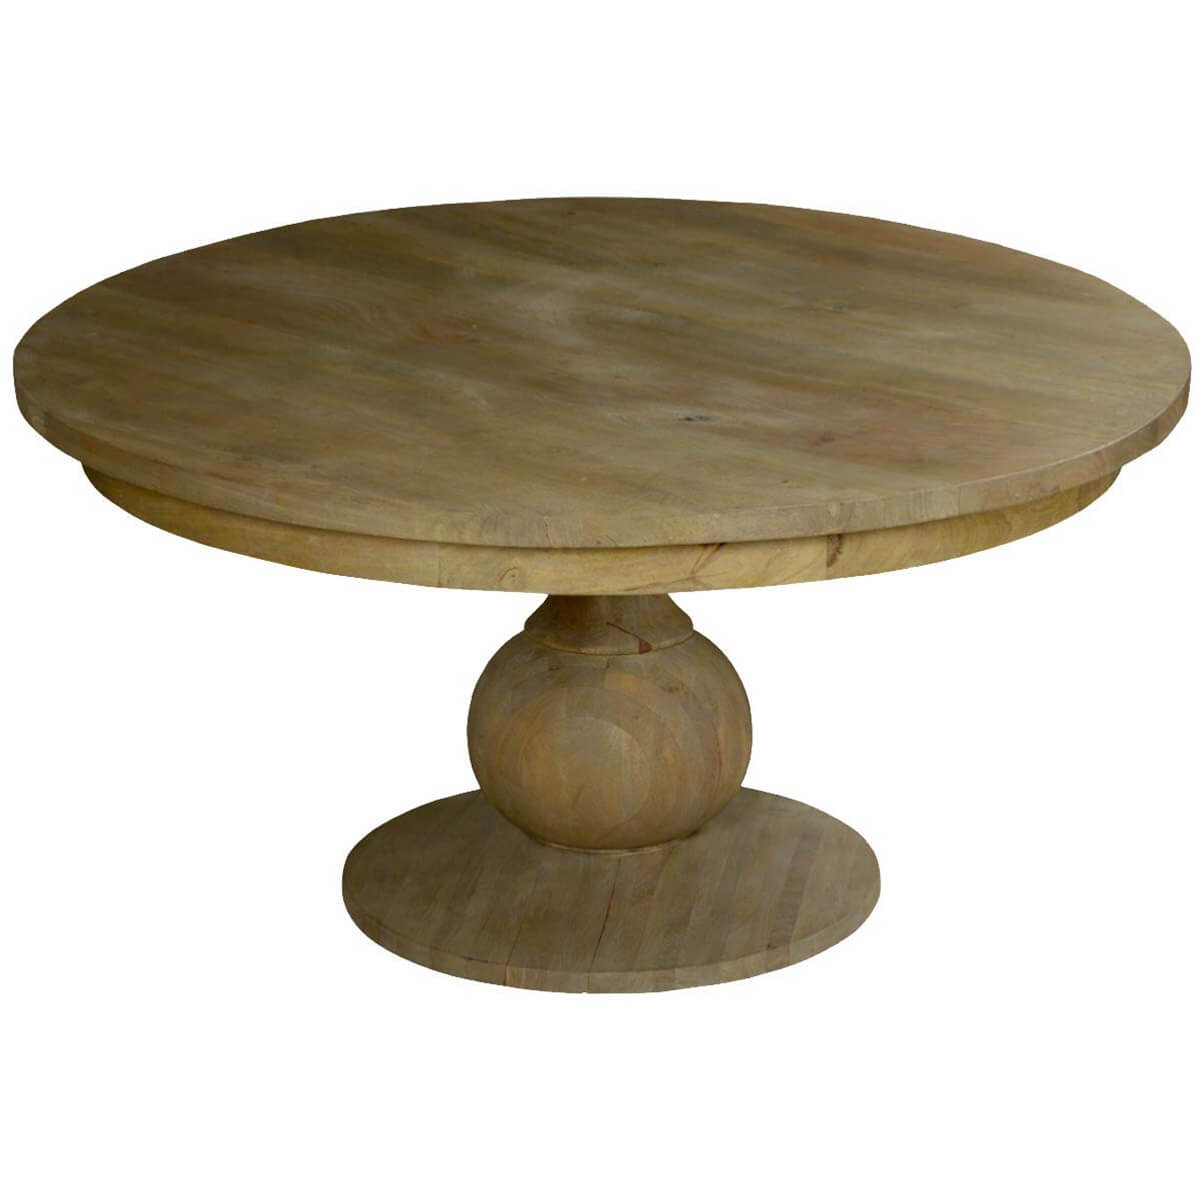 Smokey Tan Solid Mango Wood 60 Round Pedestal Dining Table